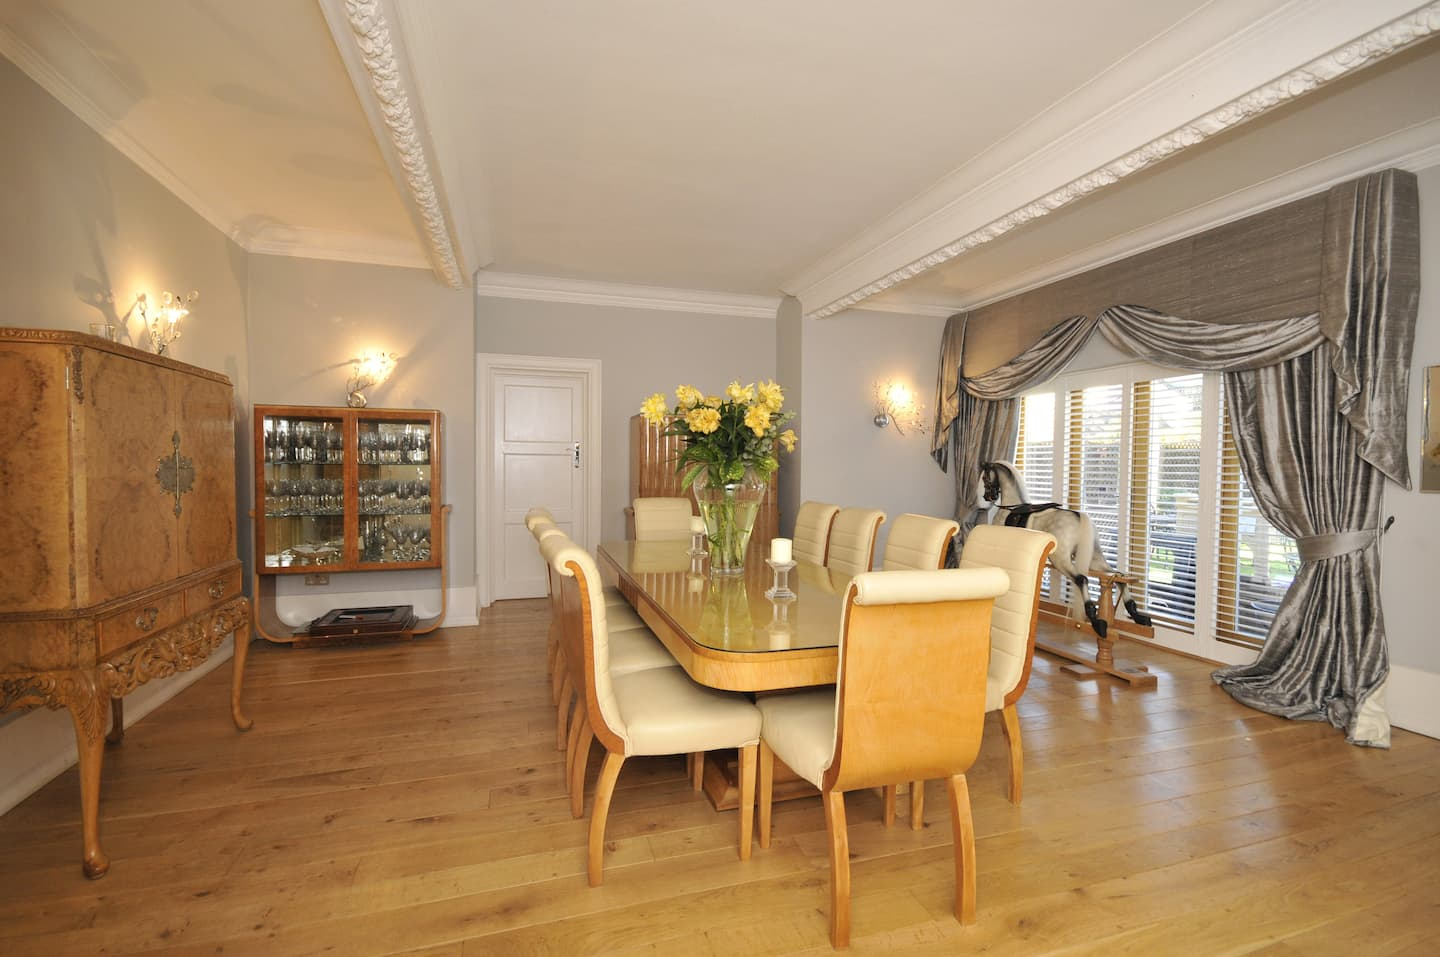 Eclectic Contemporary Dining Room With Scroll Back Chairs, Silver Drapes  With Large Valance,